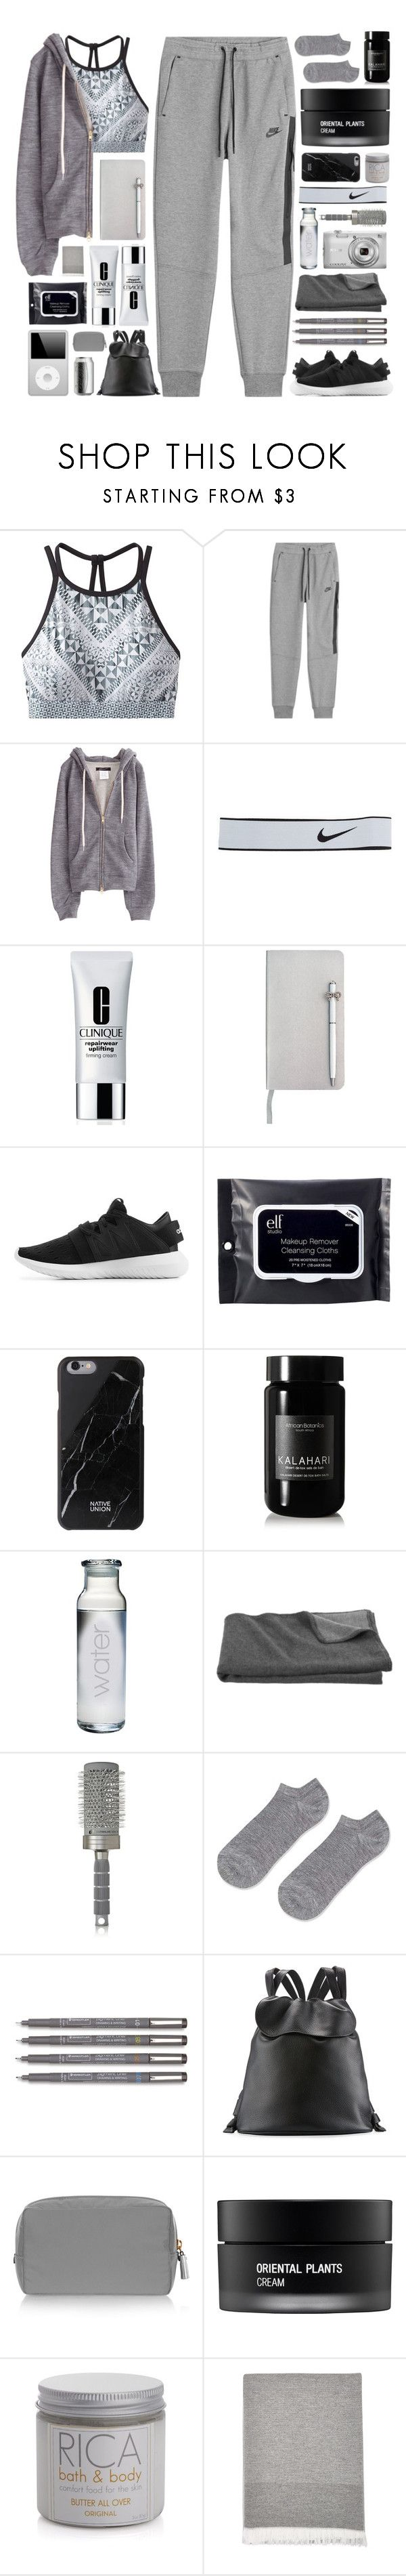 """doble y"" by cnellepoms ❤ liked on Polyvore featuring prAna, NIKE, Clinique, ICE London, adidas Originals, e.l.f., Native Union, African Botanics, Crate and Barrel and Nikon"